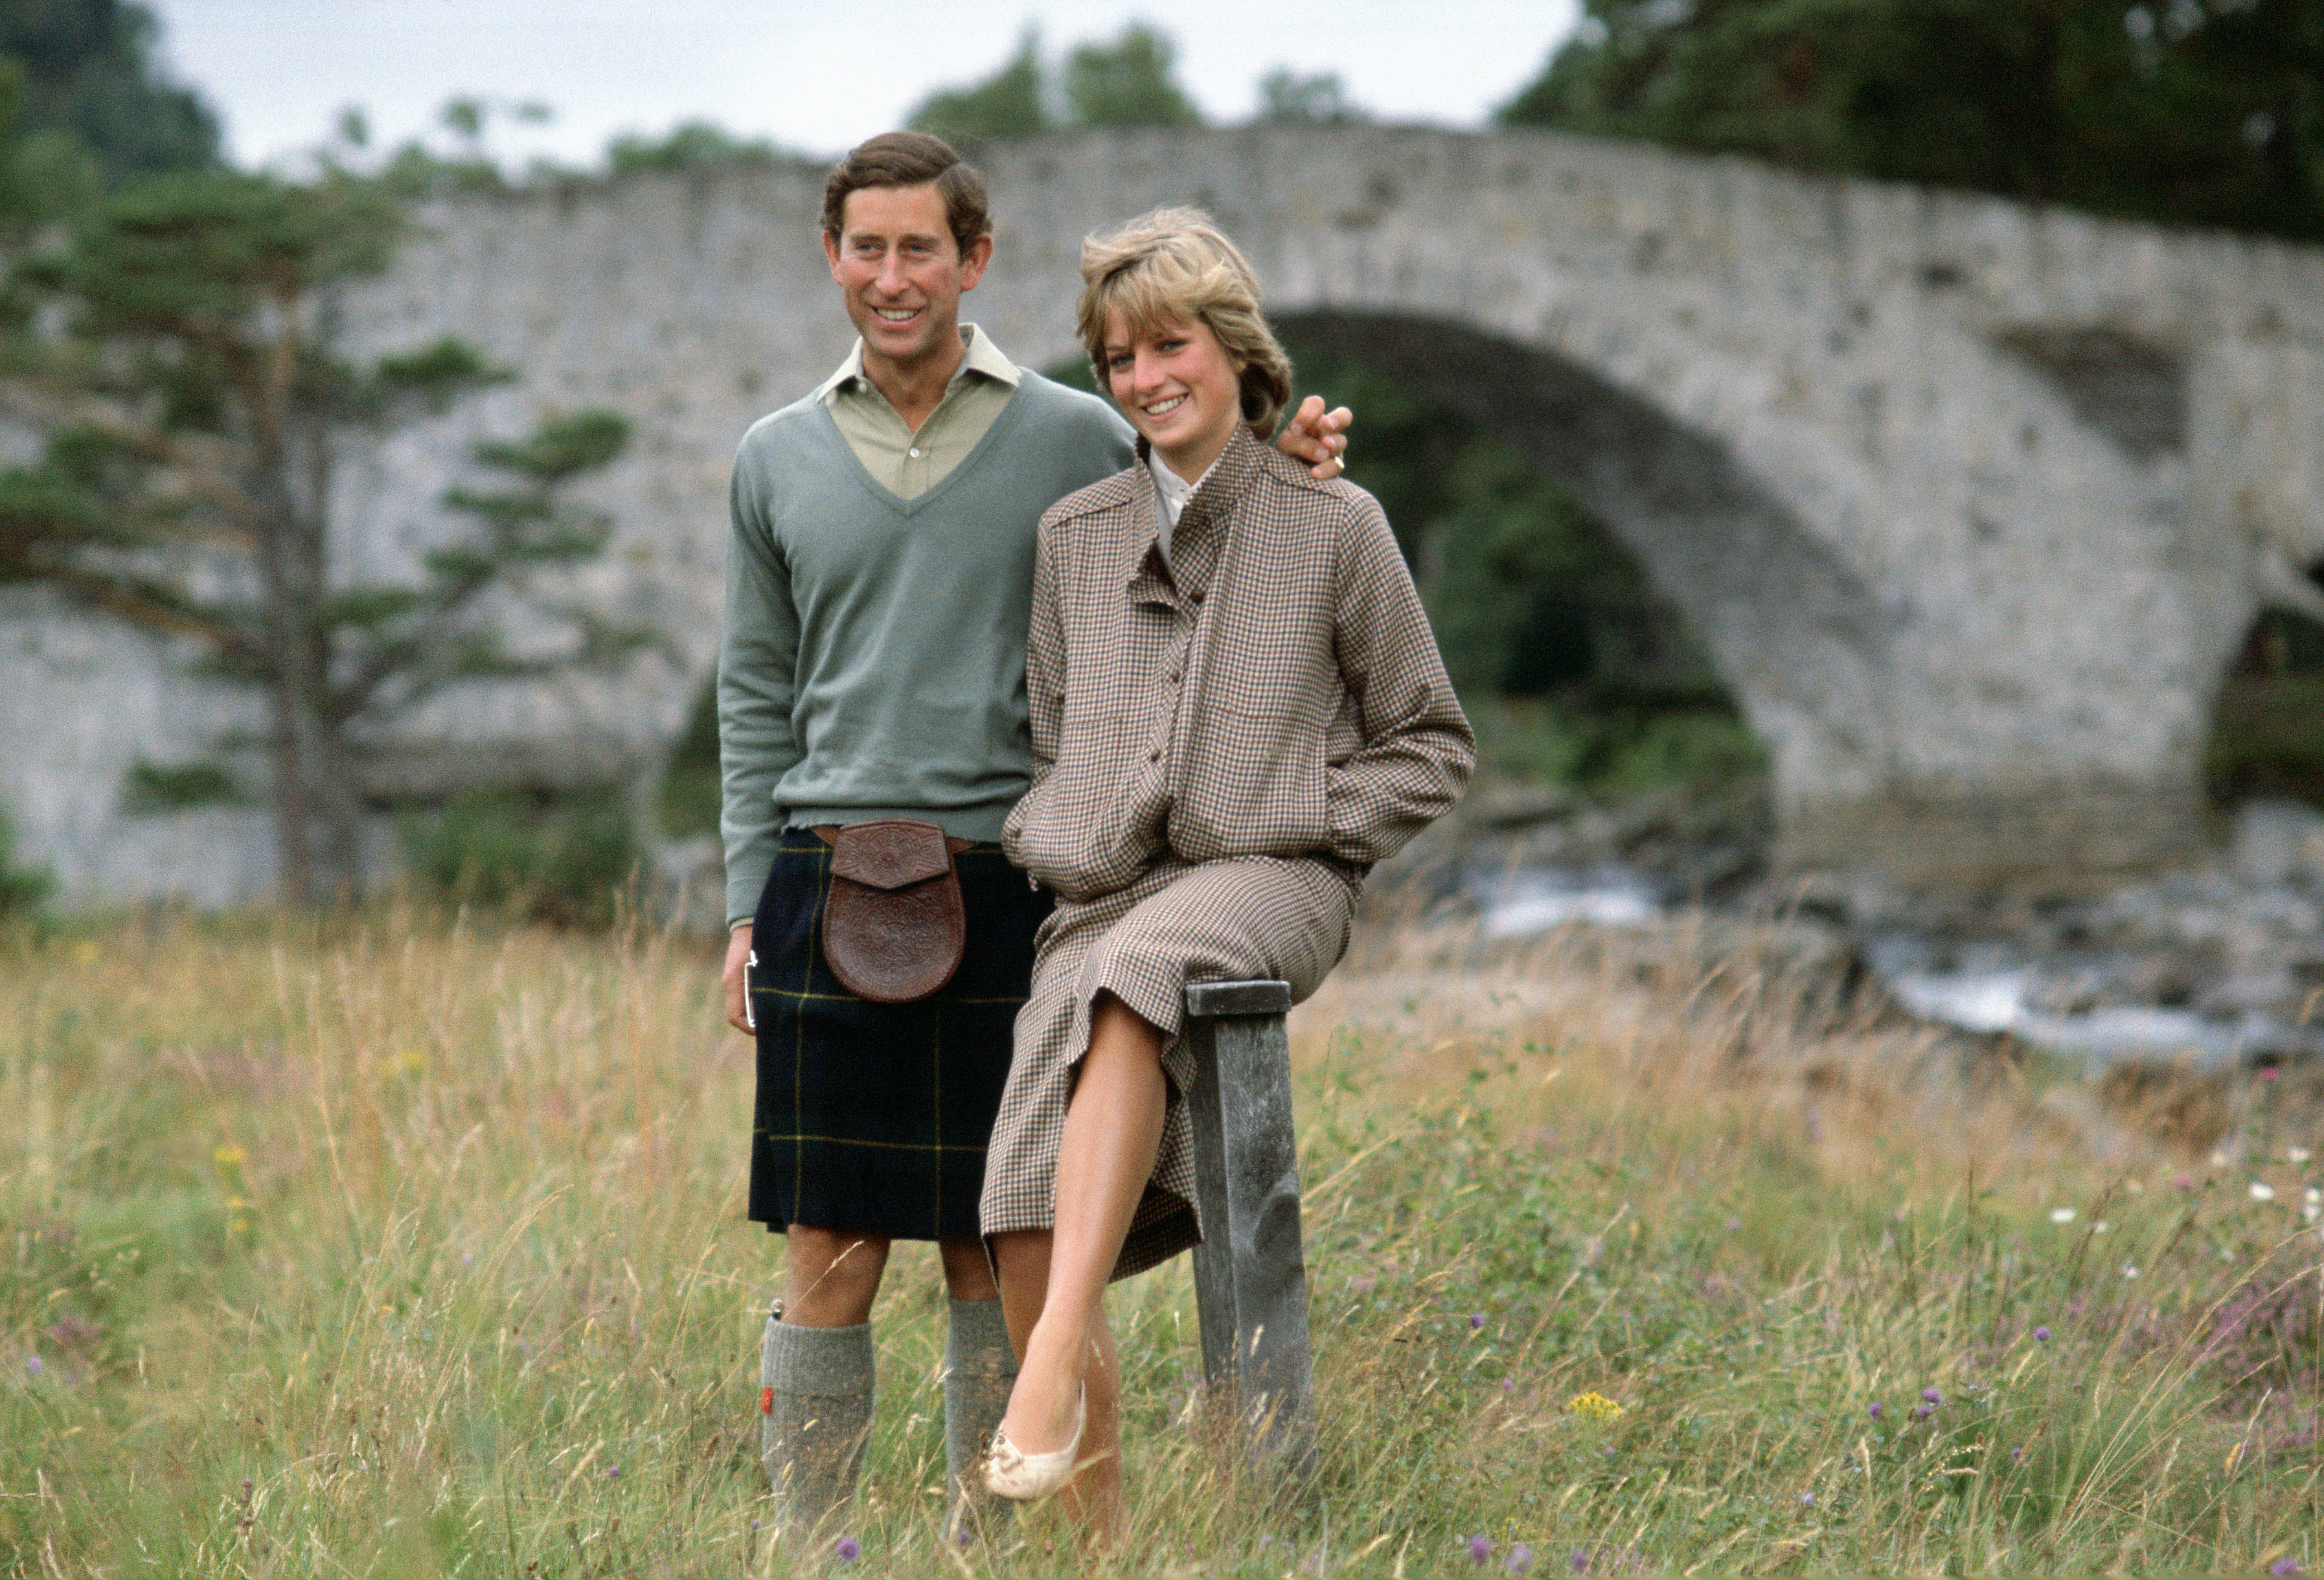 BALMORAL, UNITED KINGDOM - AUGUST 19: Prince Charles With His Arm Around His Wife, Princess Diana, During A Honeymoon Photocall By The River Dee. The Princess Is Wearing A Suit Designed By Bill Pashley With A Pair Of Shoes By The Chelsea Cobbler. The Prince Is Wearing A Kilt. (Photo by Tim Graham/Getty Images)